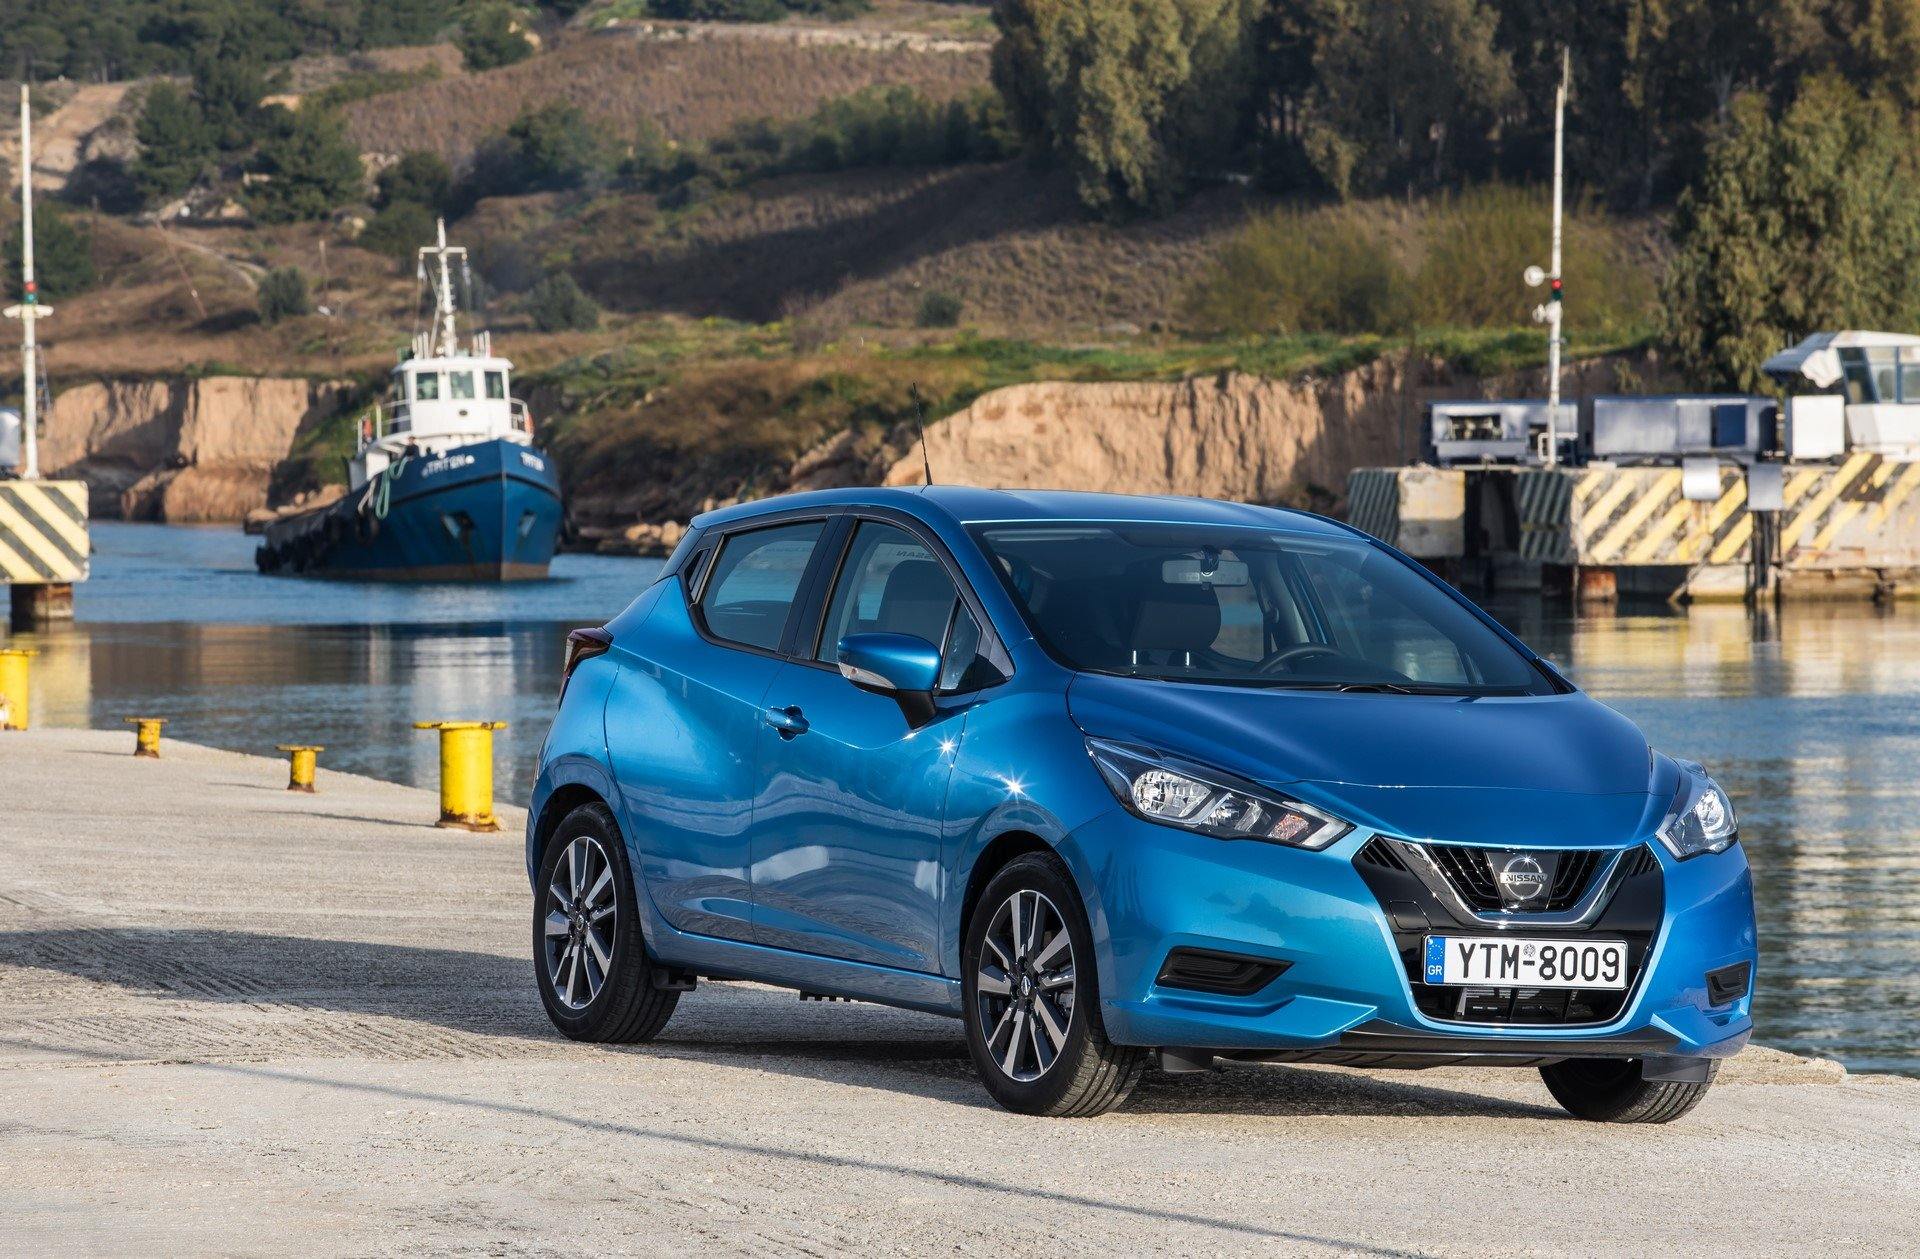 Nissan Micra 2019 Greek (4)